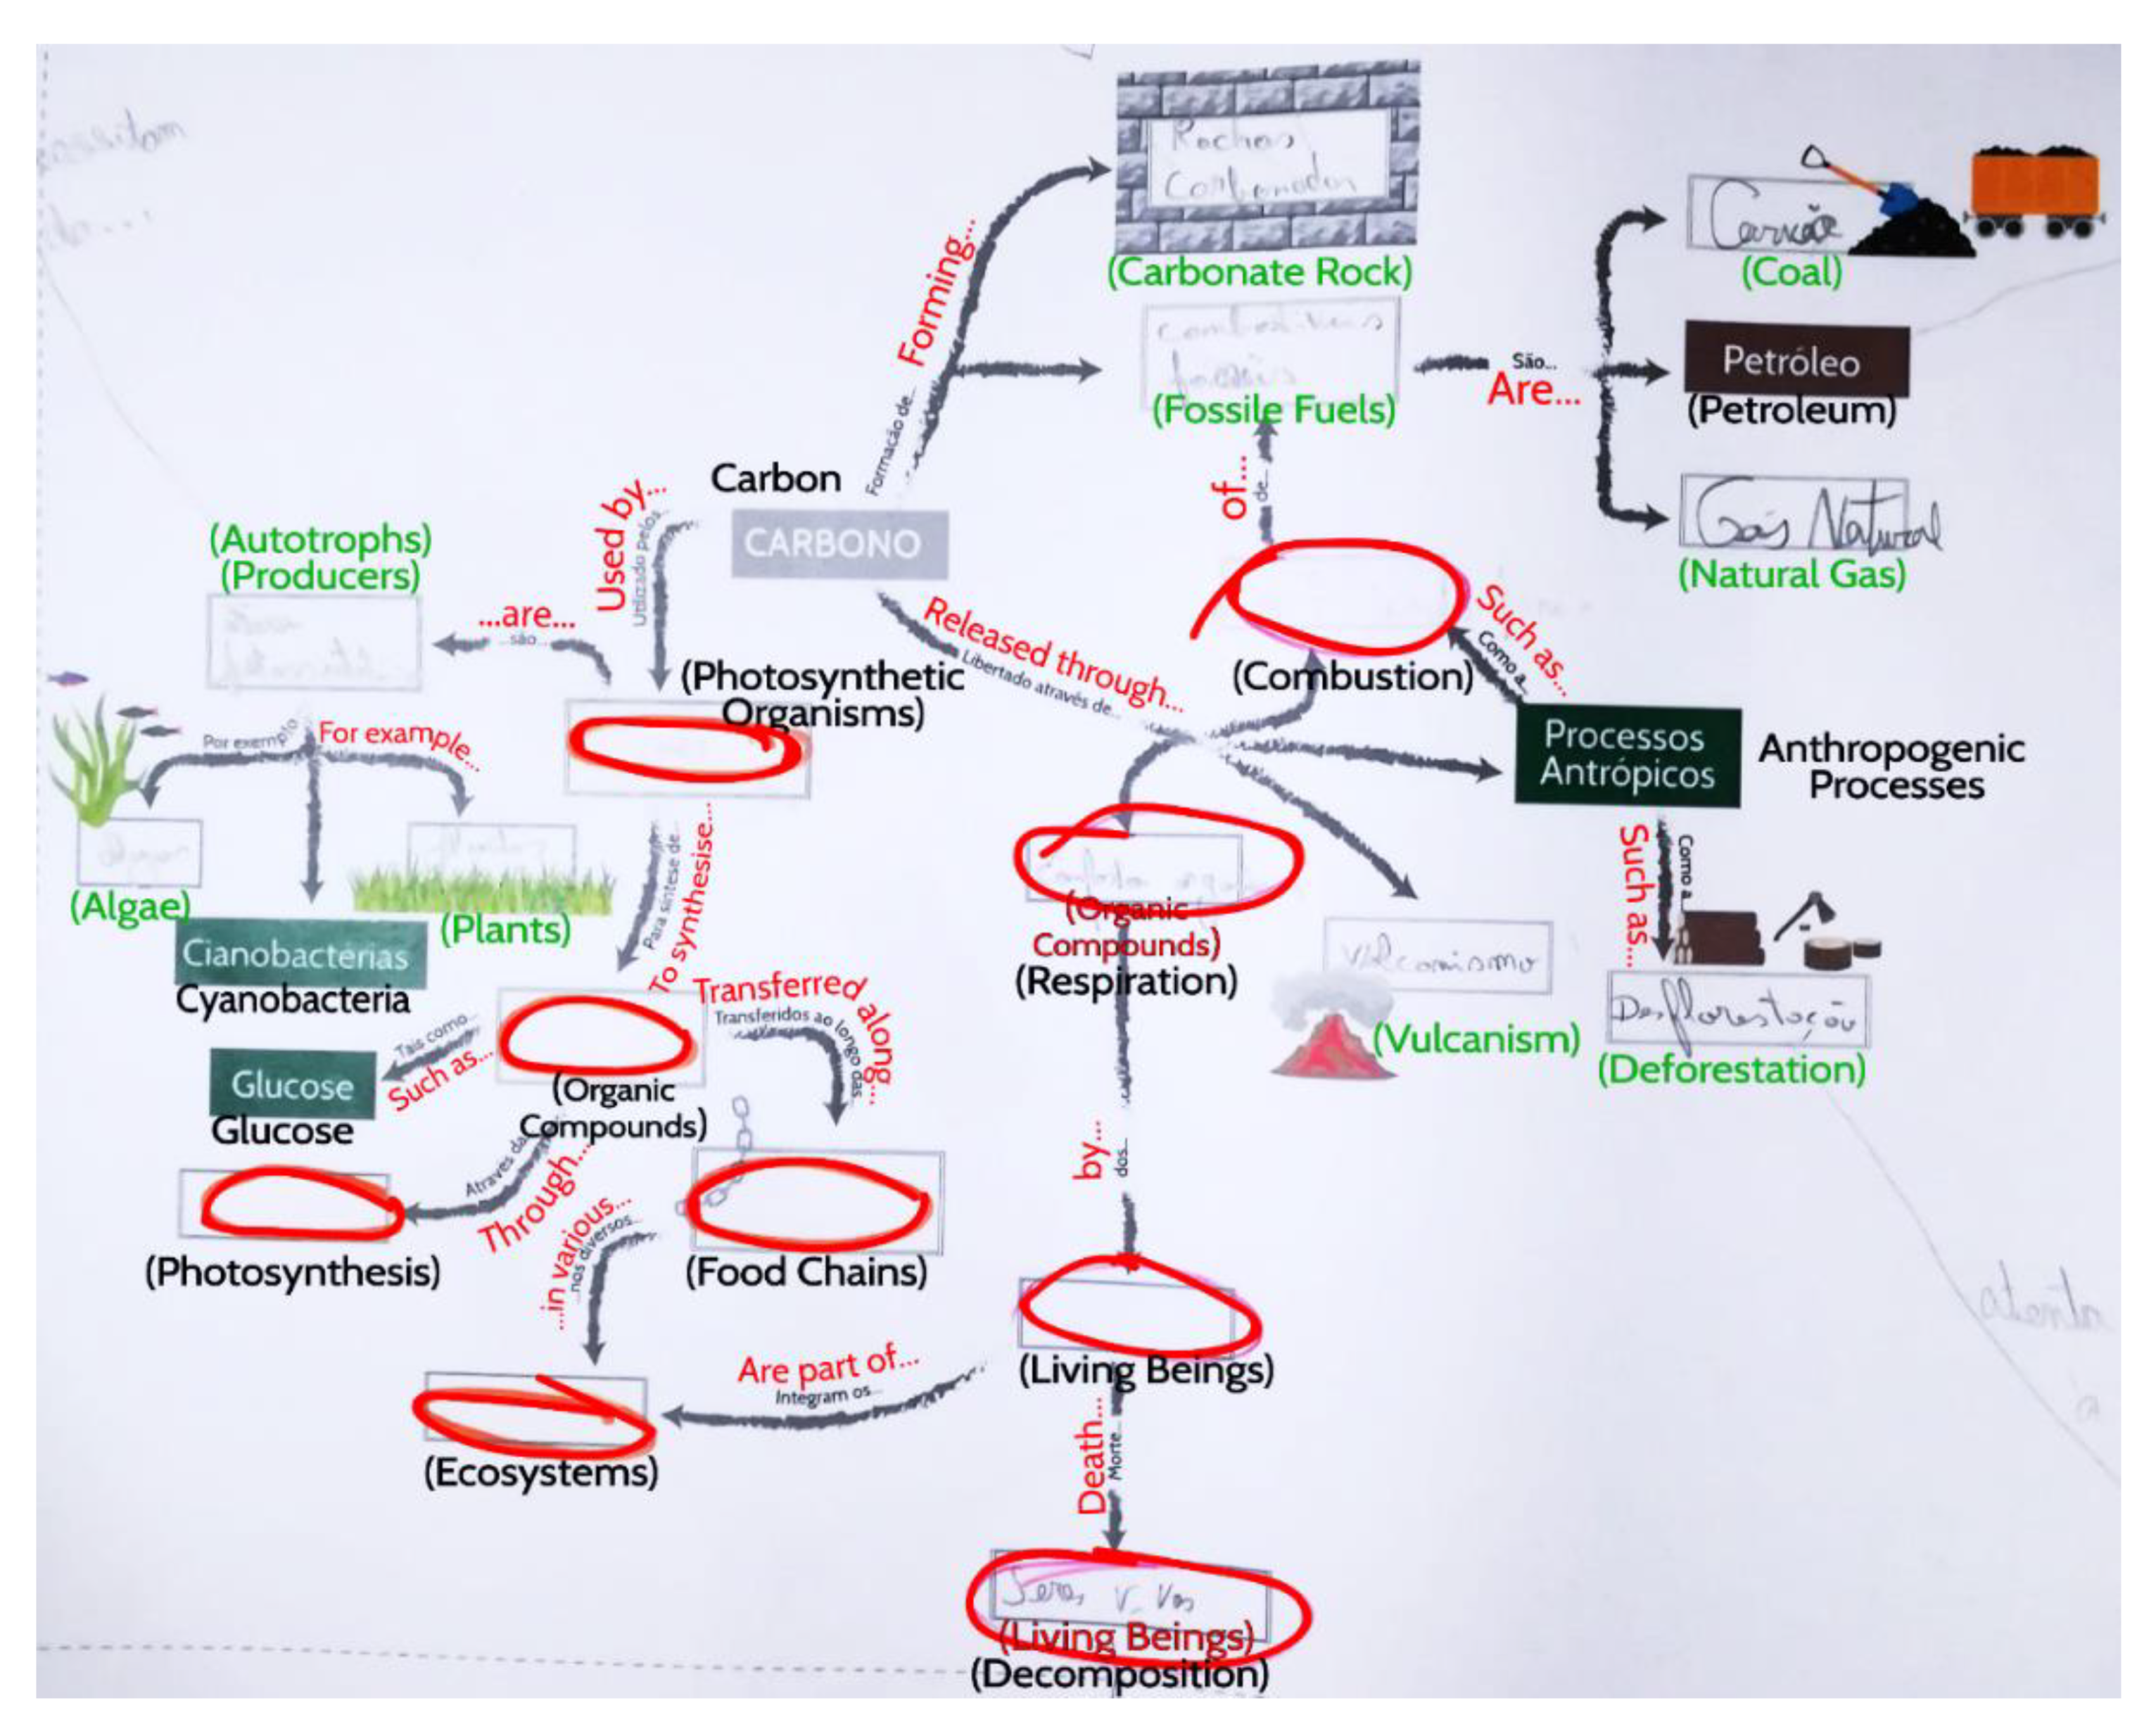 Geosciences Free Full Text Improved Concept Map Based Teaching To Promote A Holistic Earth System View Html